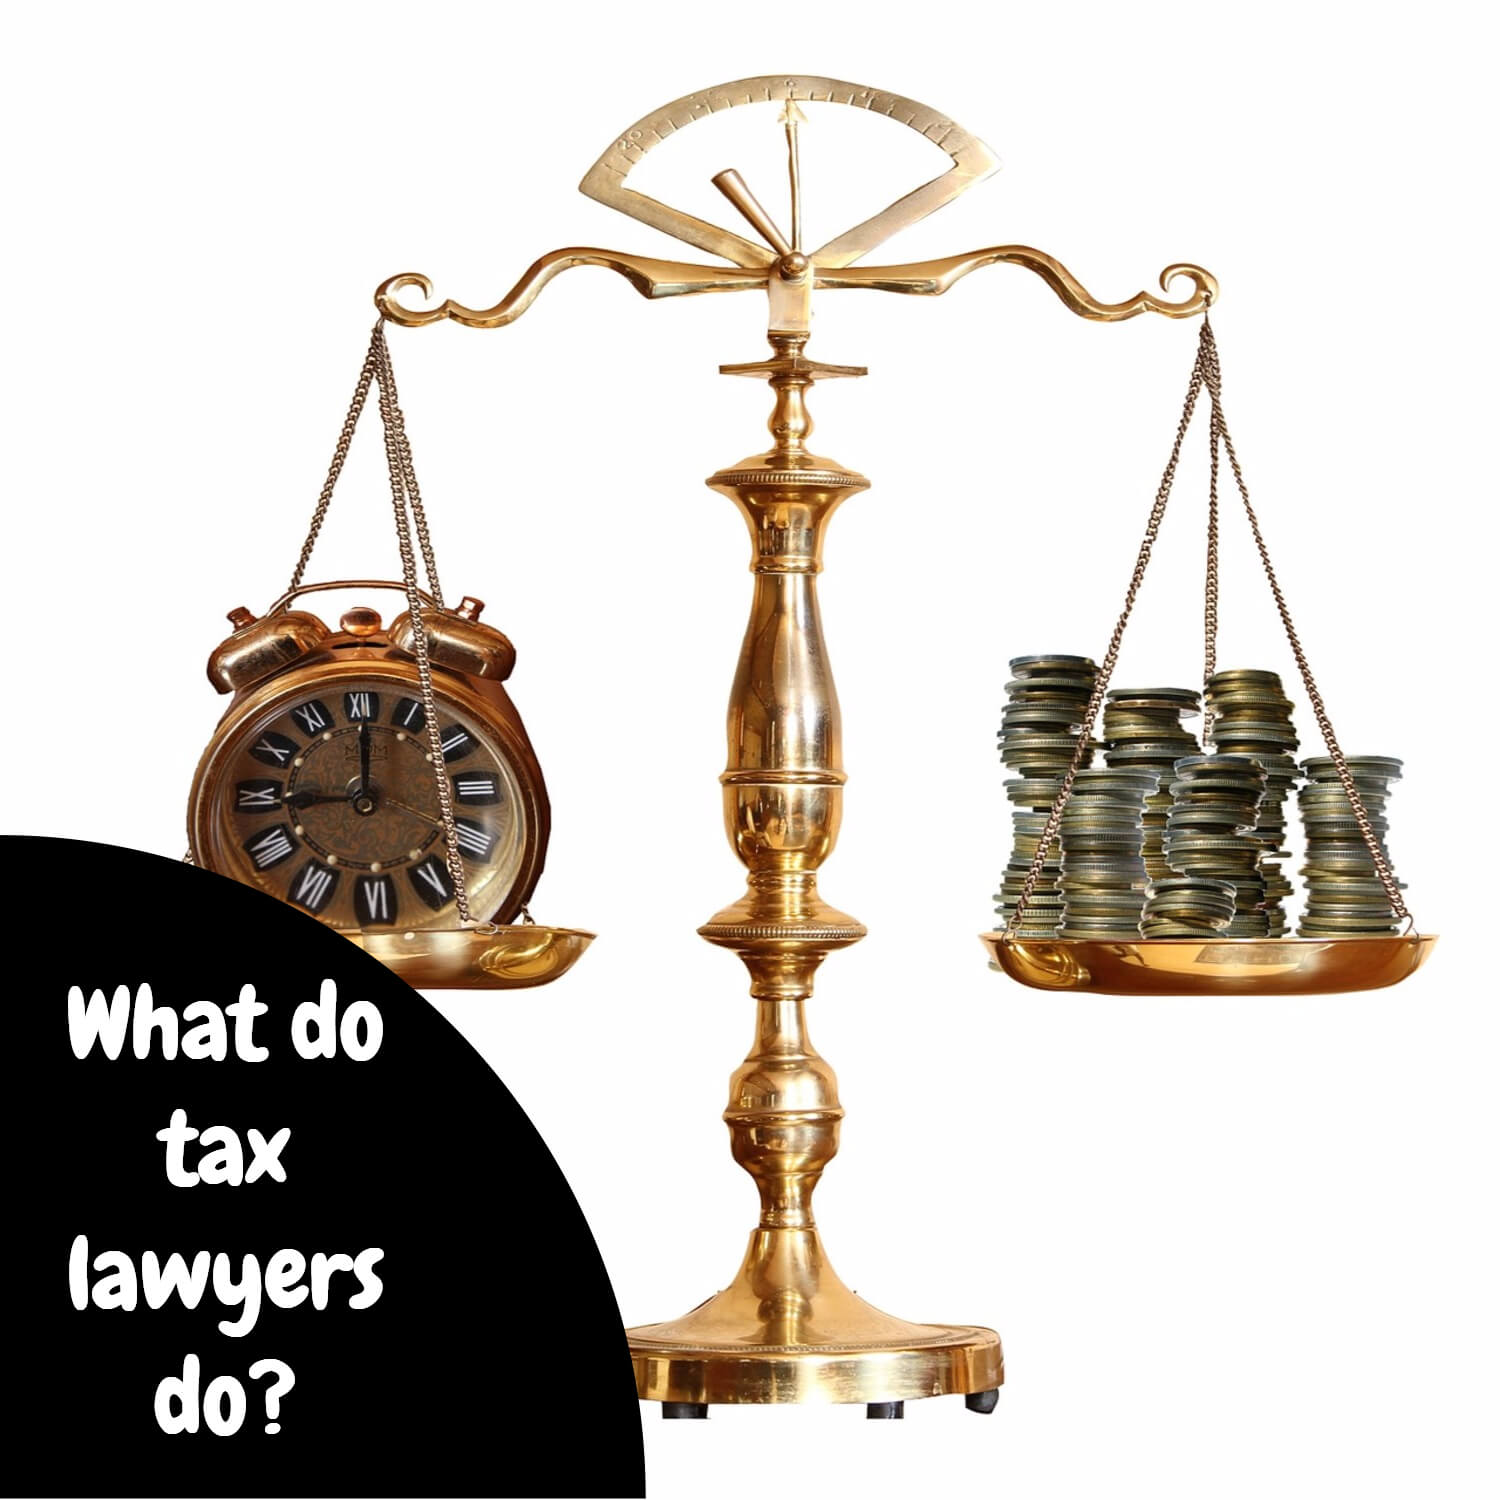 What do tax lawyers do